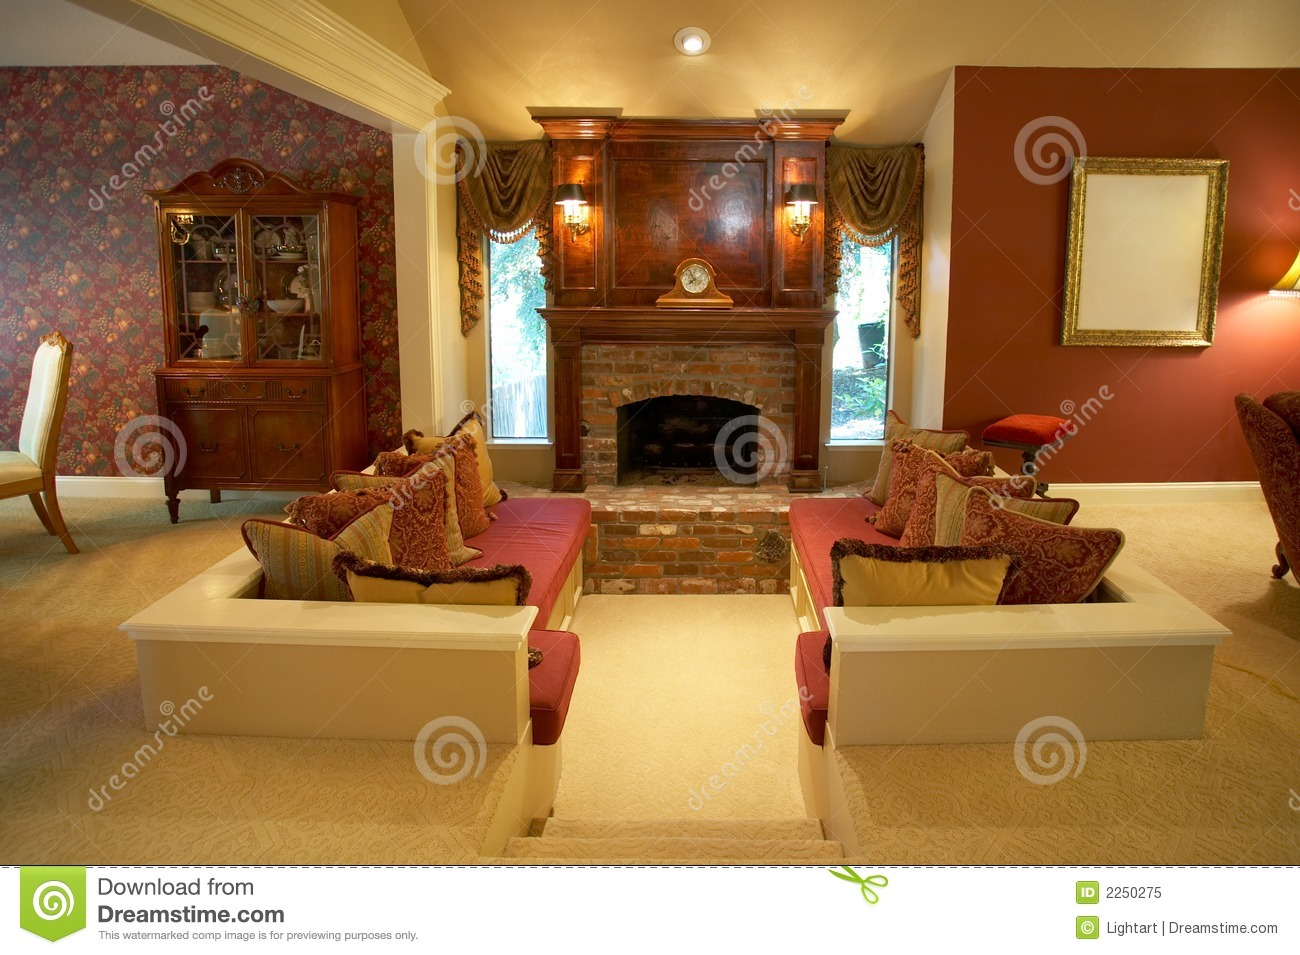 Warm Sunken Living Room Royalty Free Stock Photo - Image: 2250275